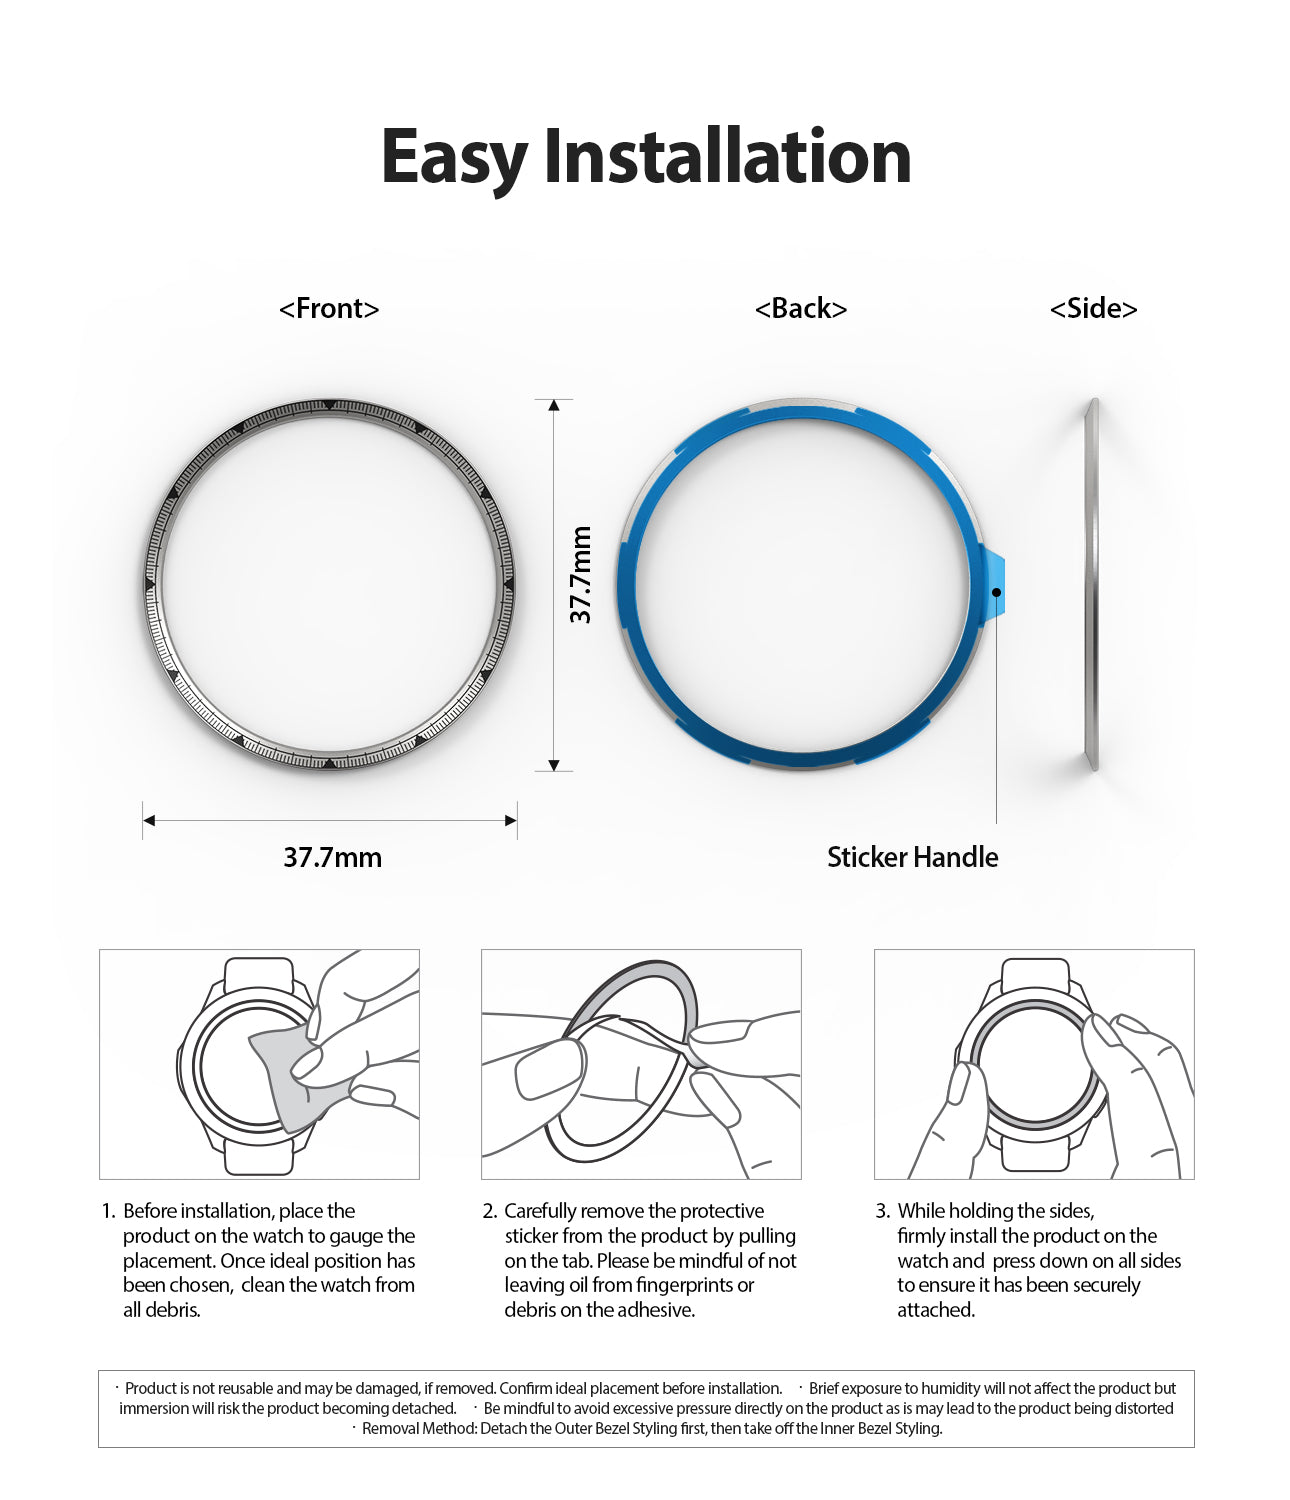 Ringke Inner Bezel Styling for Galaxy Watch 46mm, Gear S3 Frontier, Classic, GW-46-IN-01, EASY INSTALLATION